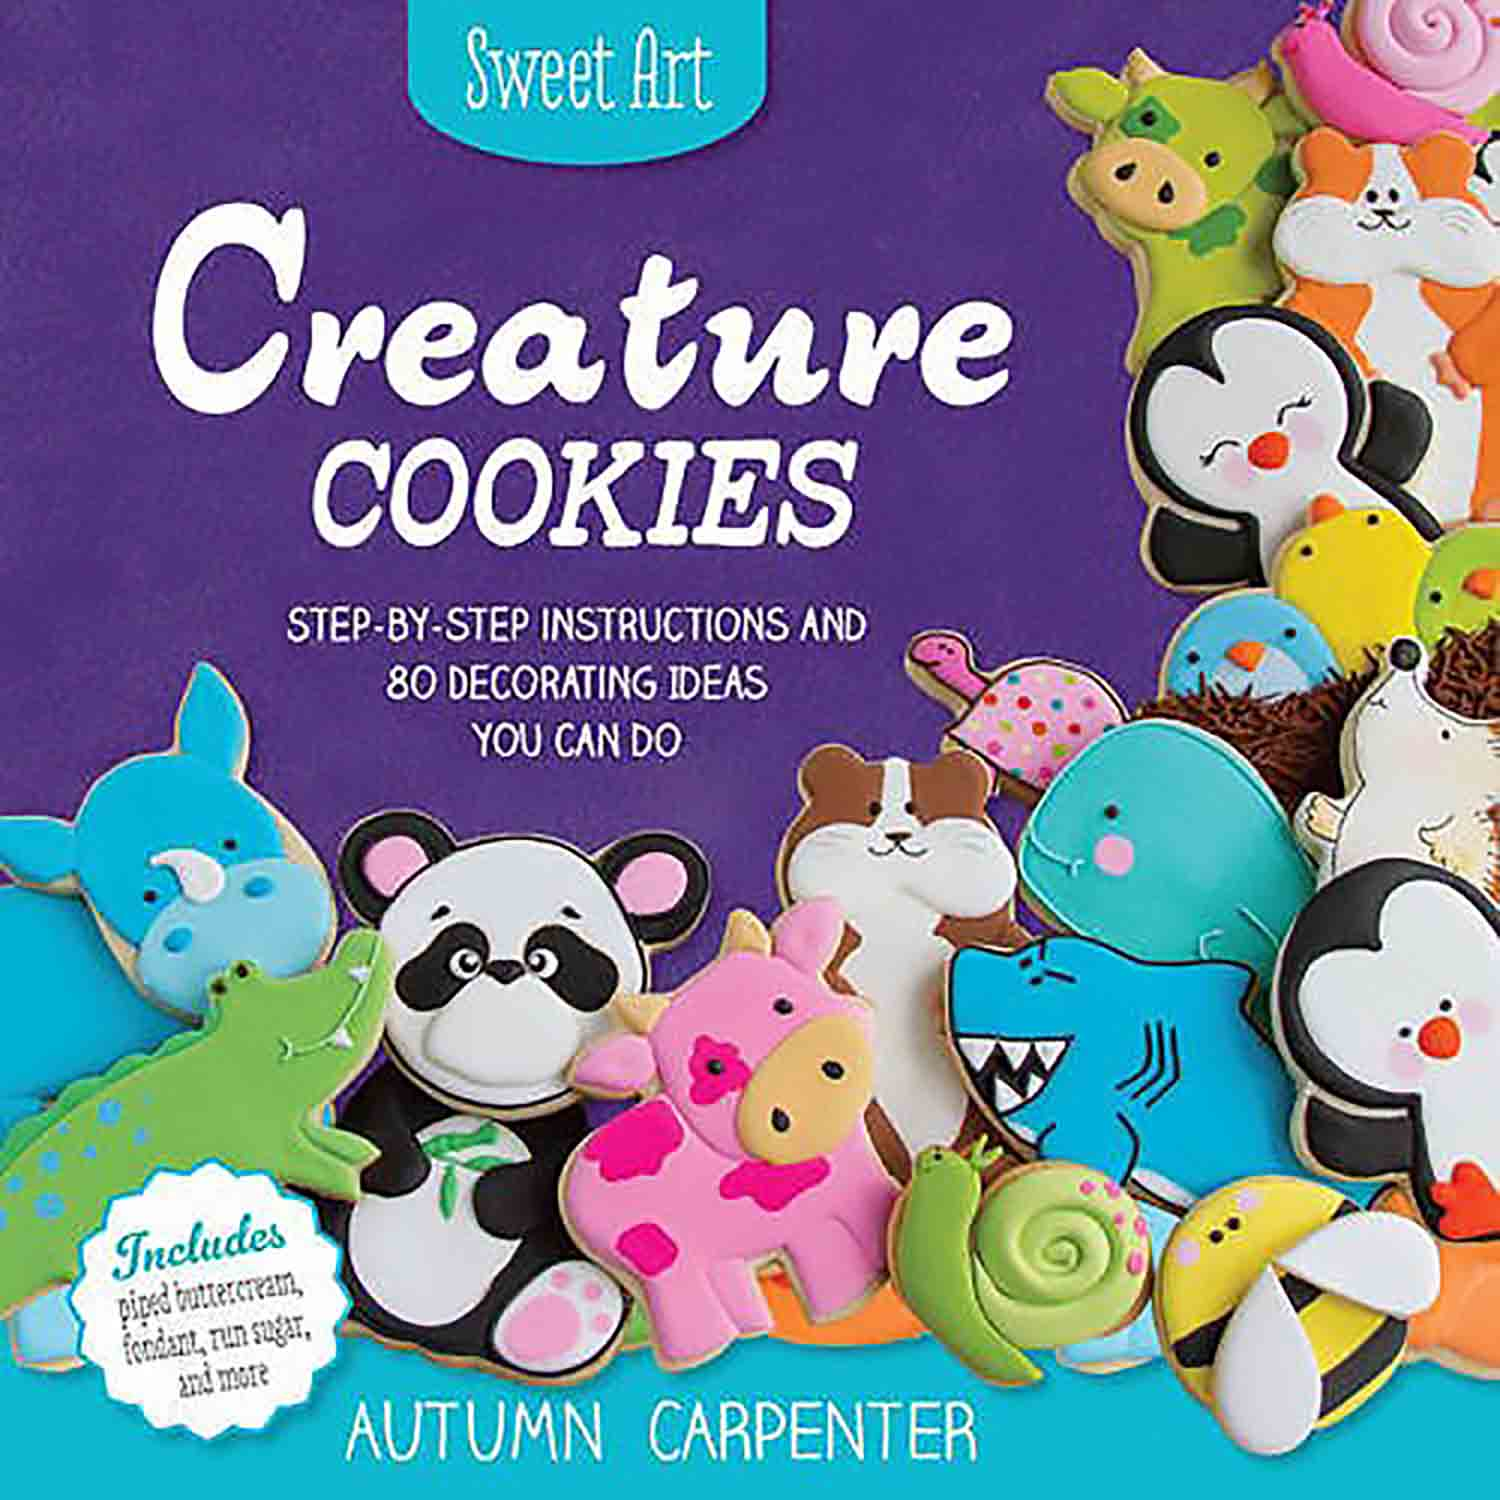 Carpenter - Creature Cookies